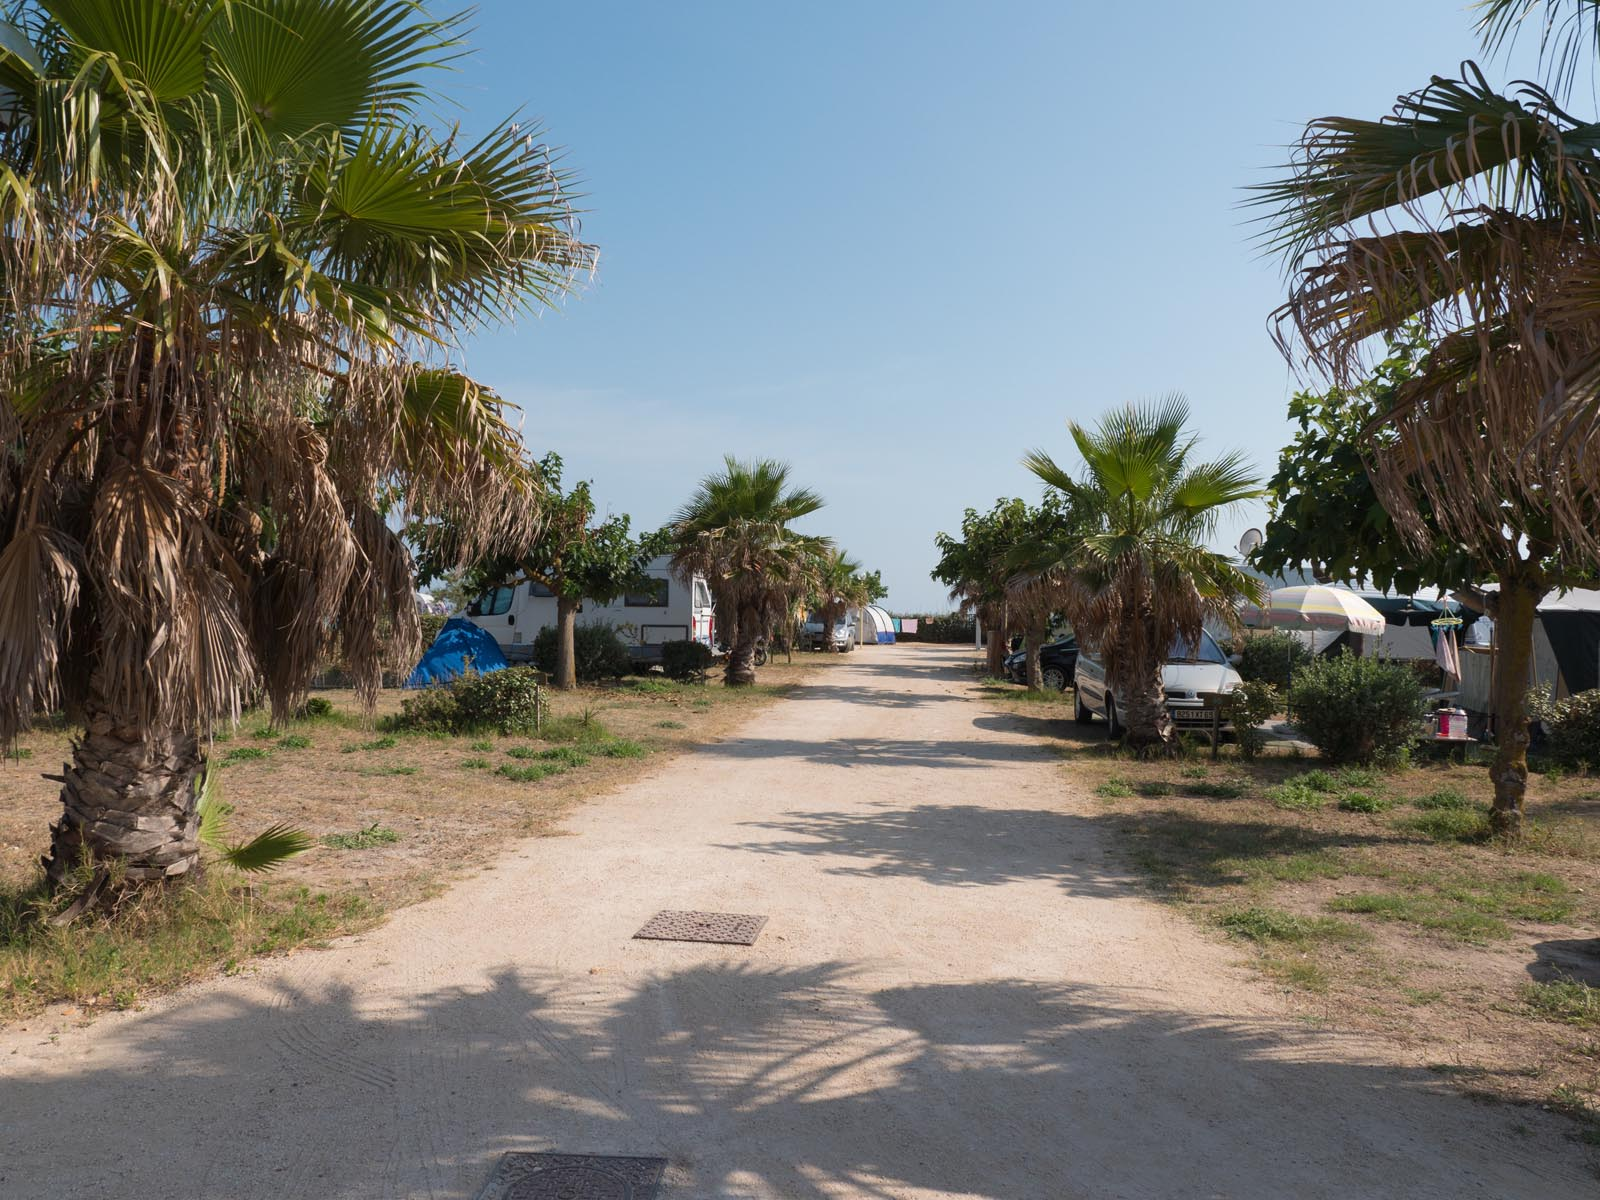 Campsite by the sea with palm trees